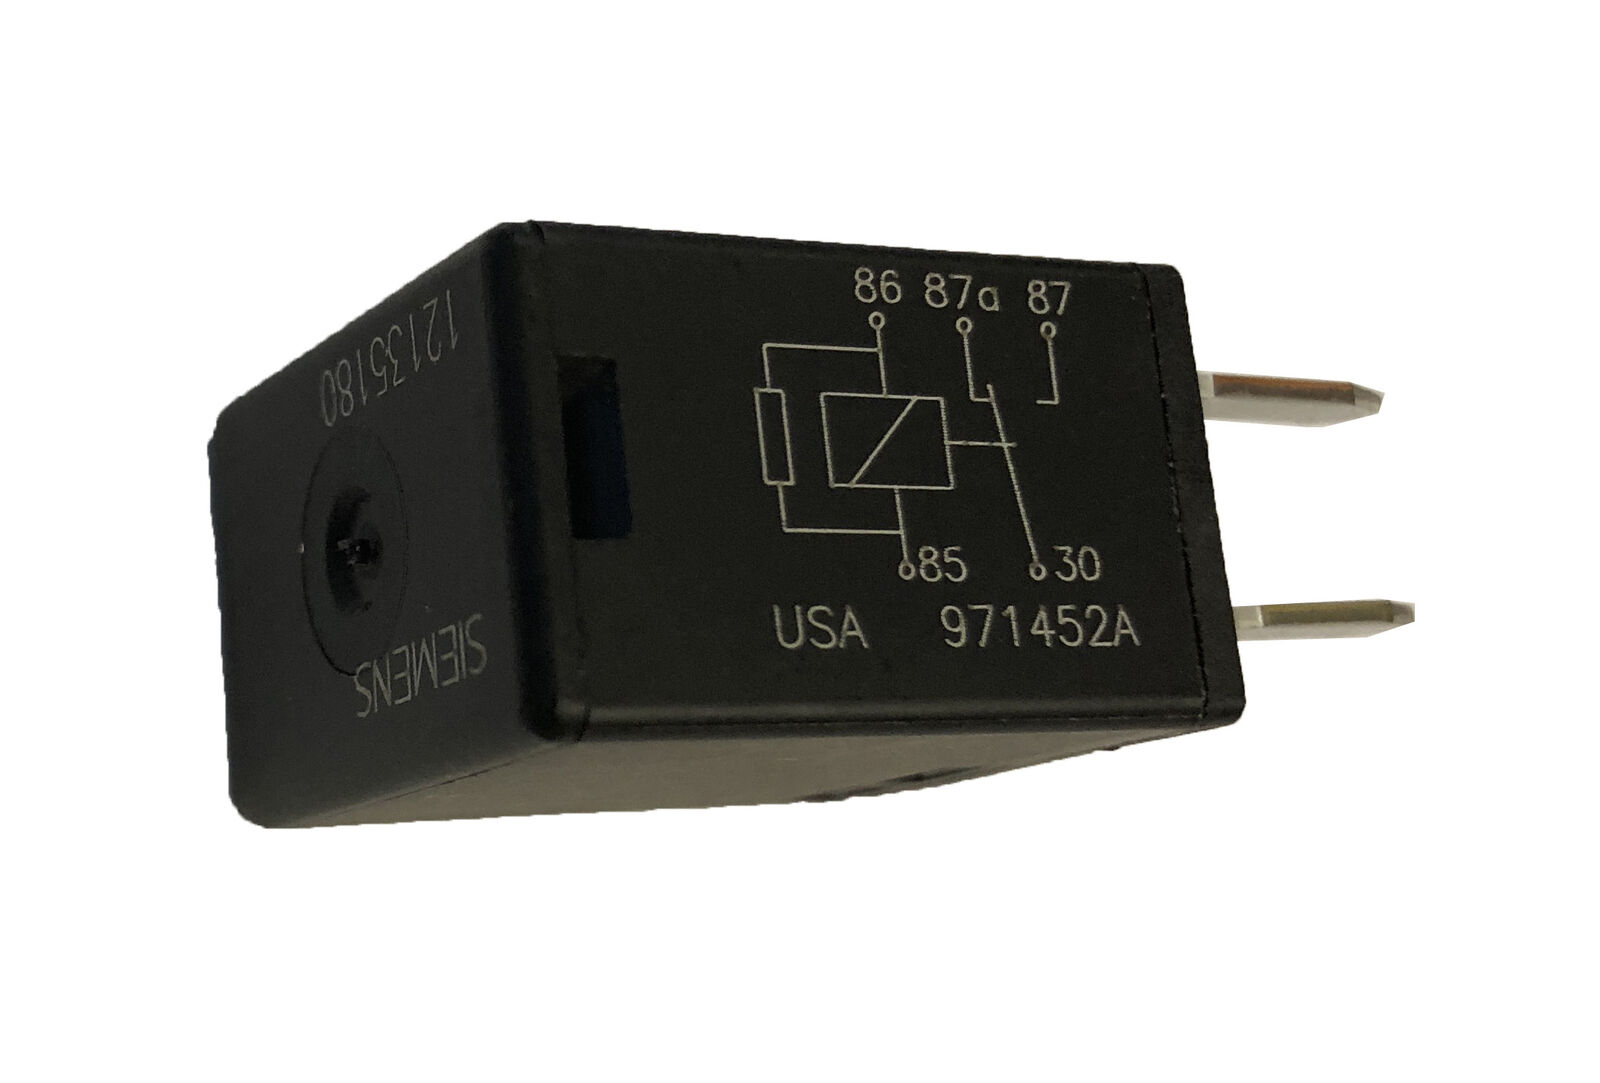 New Relay Made By Siemens D1780C 19116058 ACDelco 15-5671